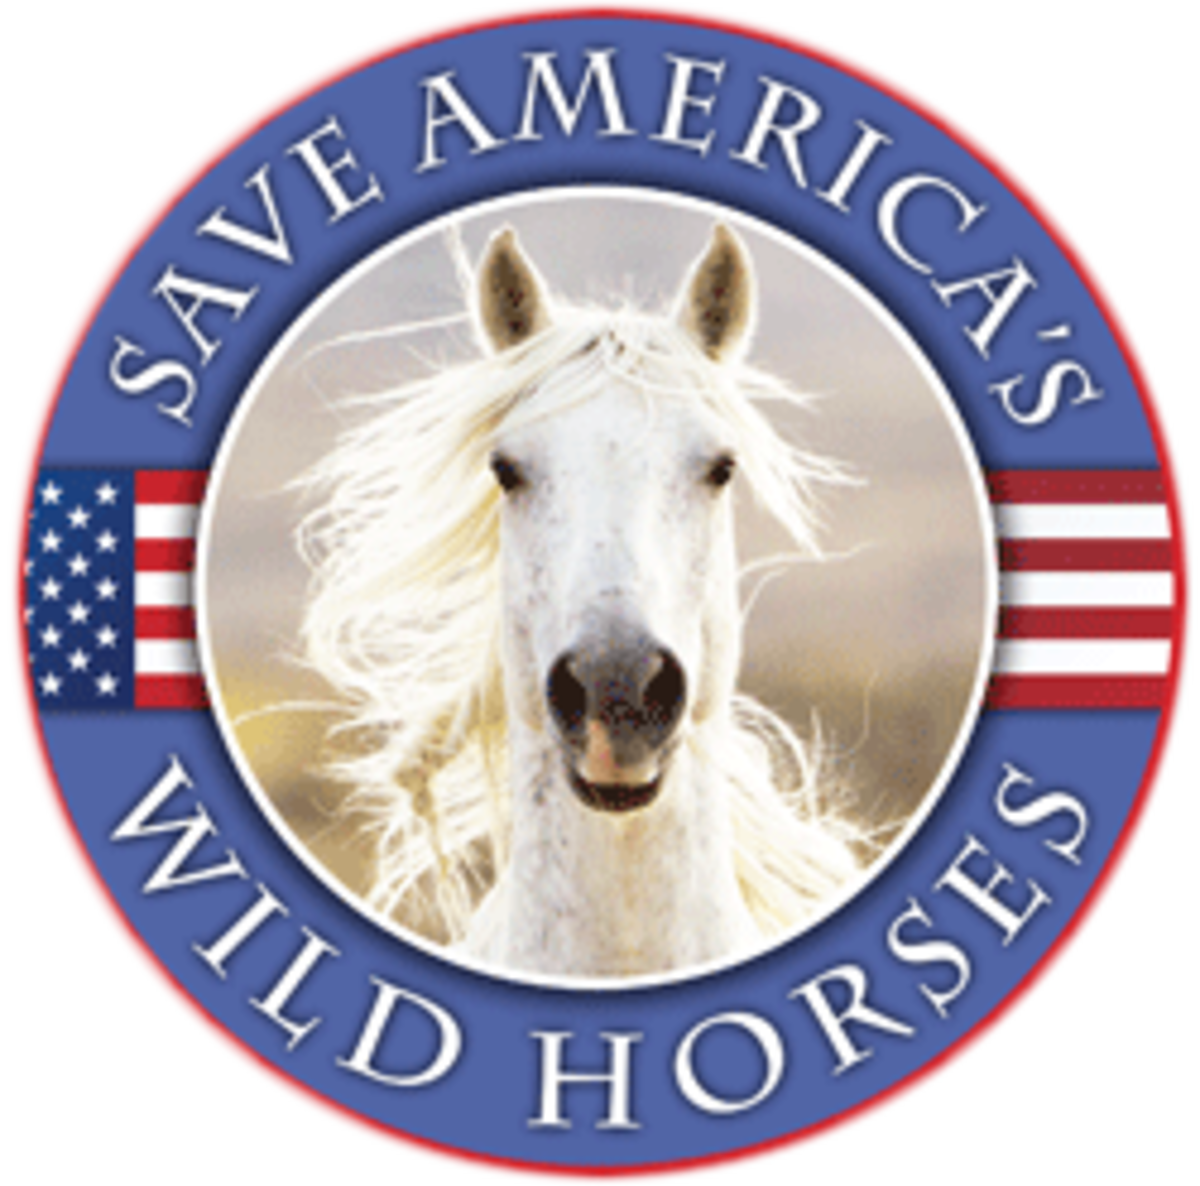 Wild Horse Freedom Federation has this emblem on their website.